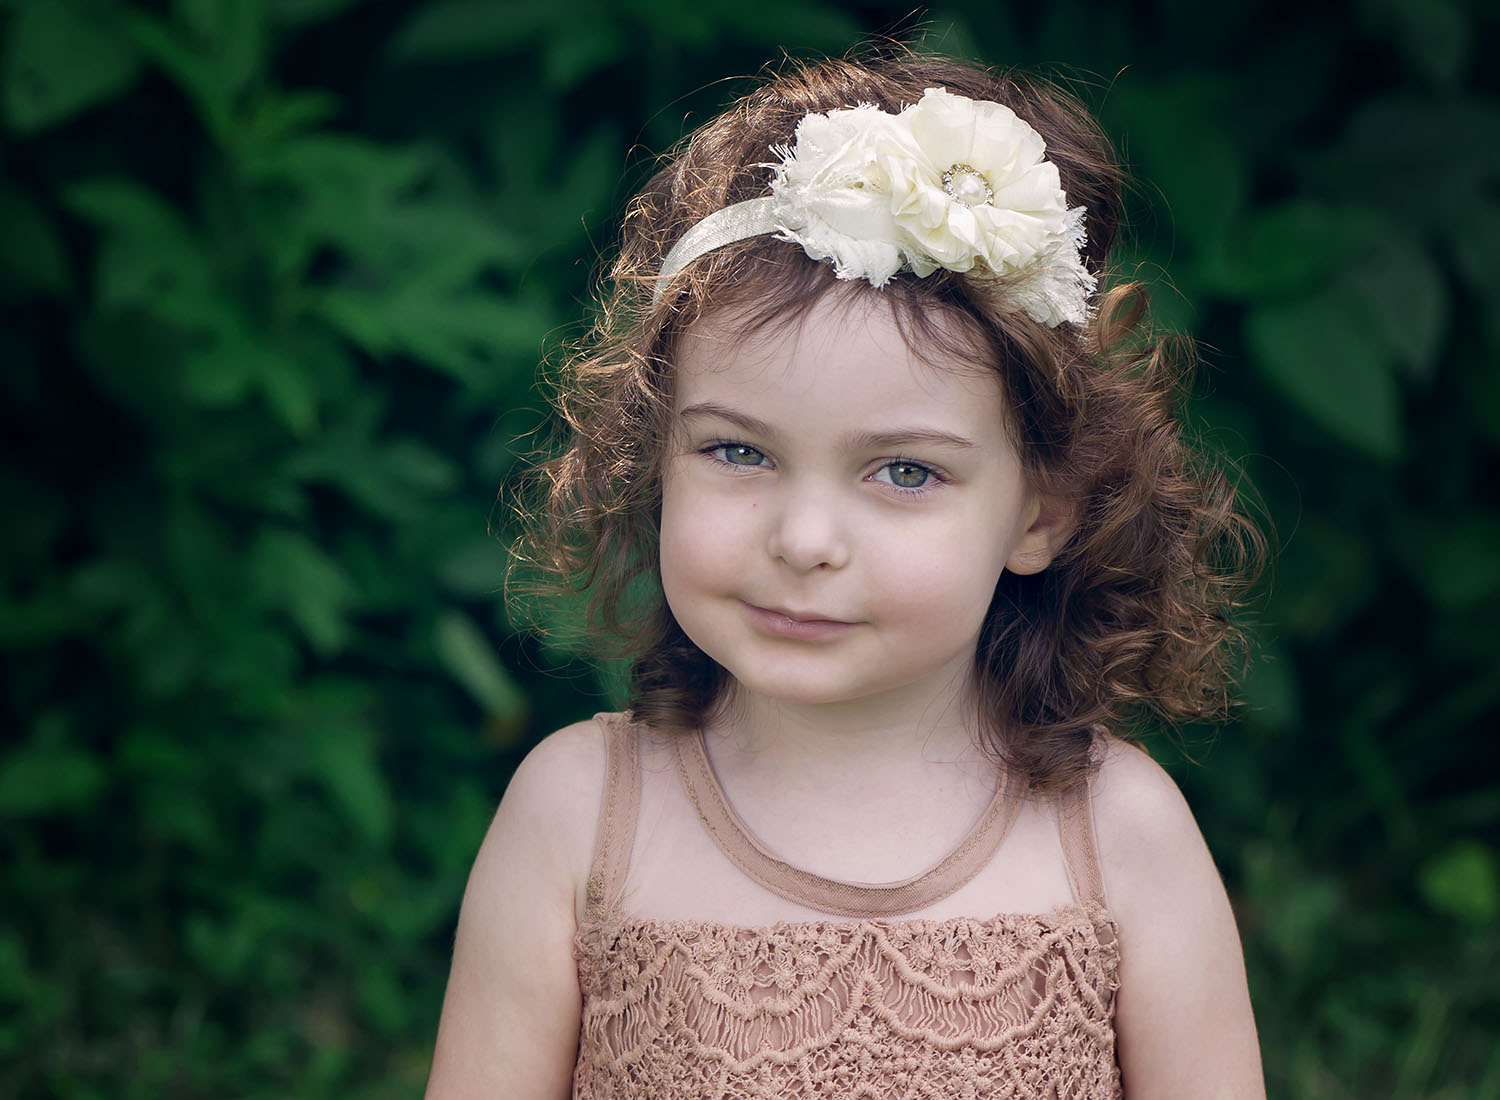 Headshot portrait of curly haired girl in blush lace dress with flower headband